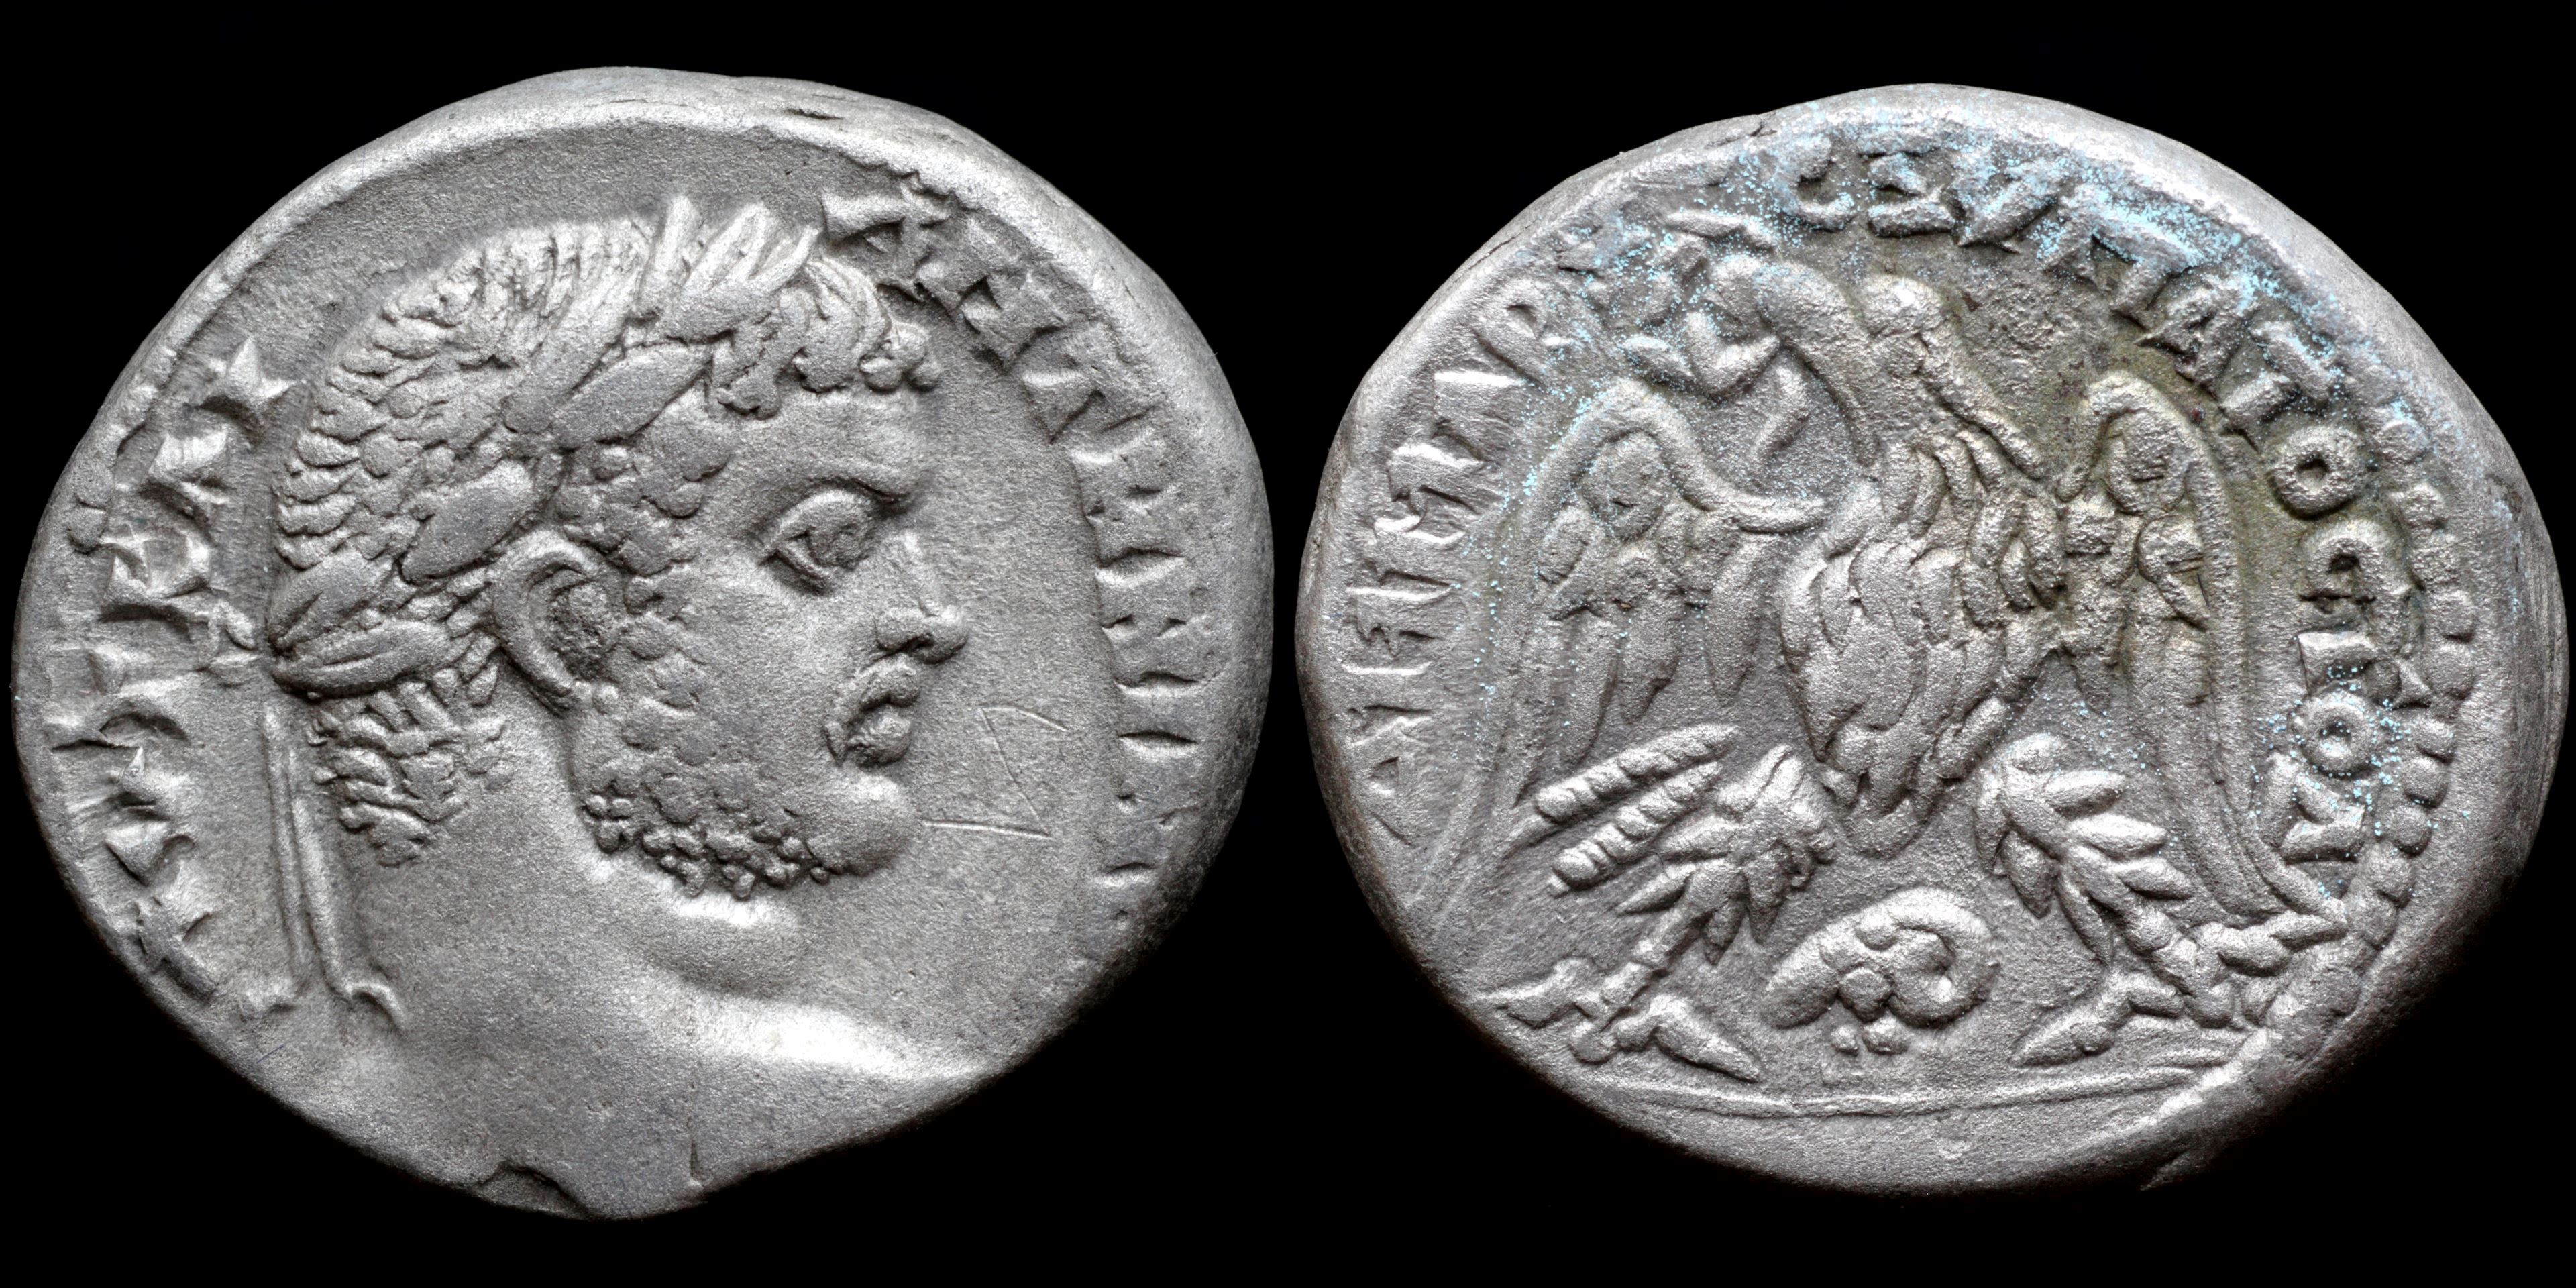 /Files/Images/Coinsite/CoinDB/Caracalla_Damascus_tetra.jpg